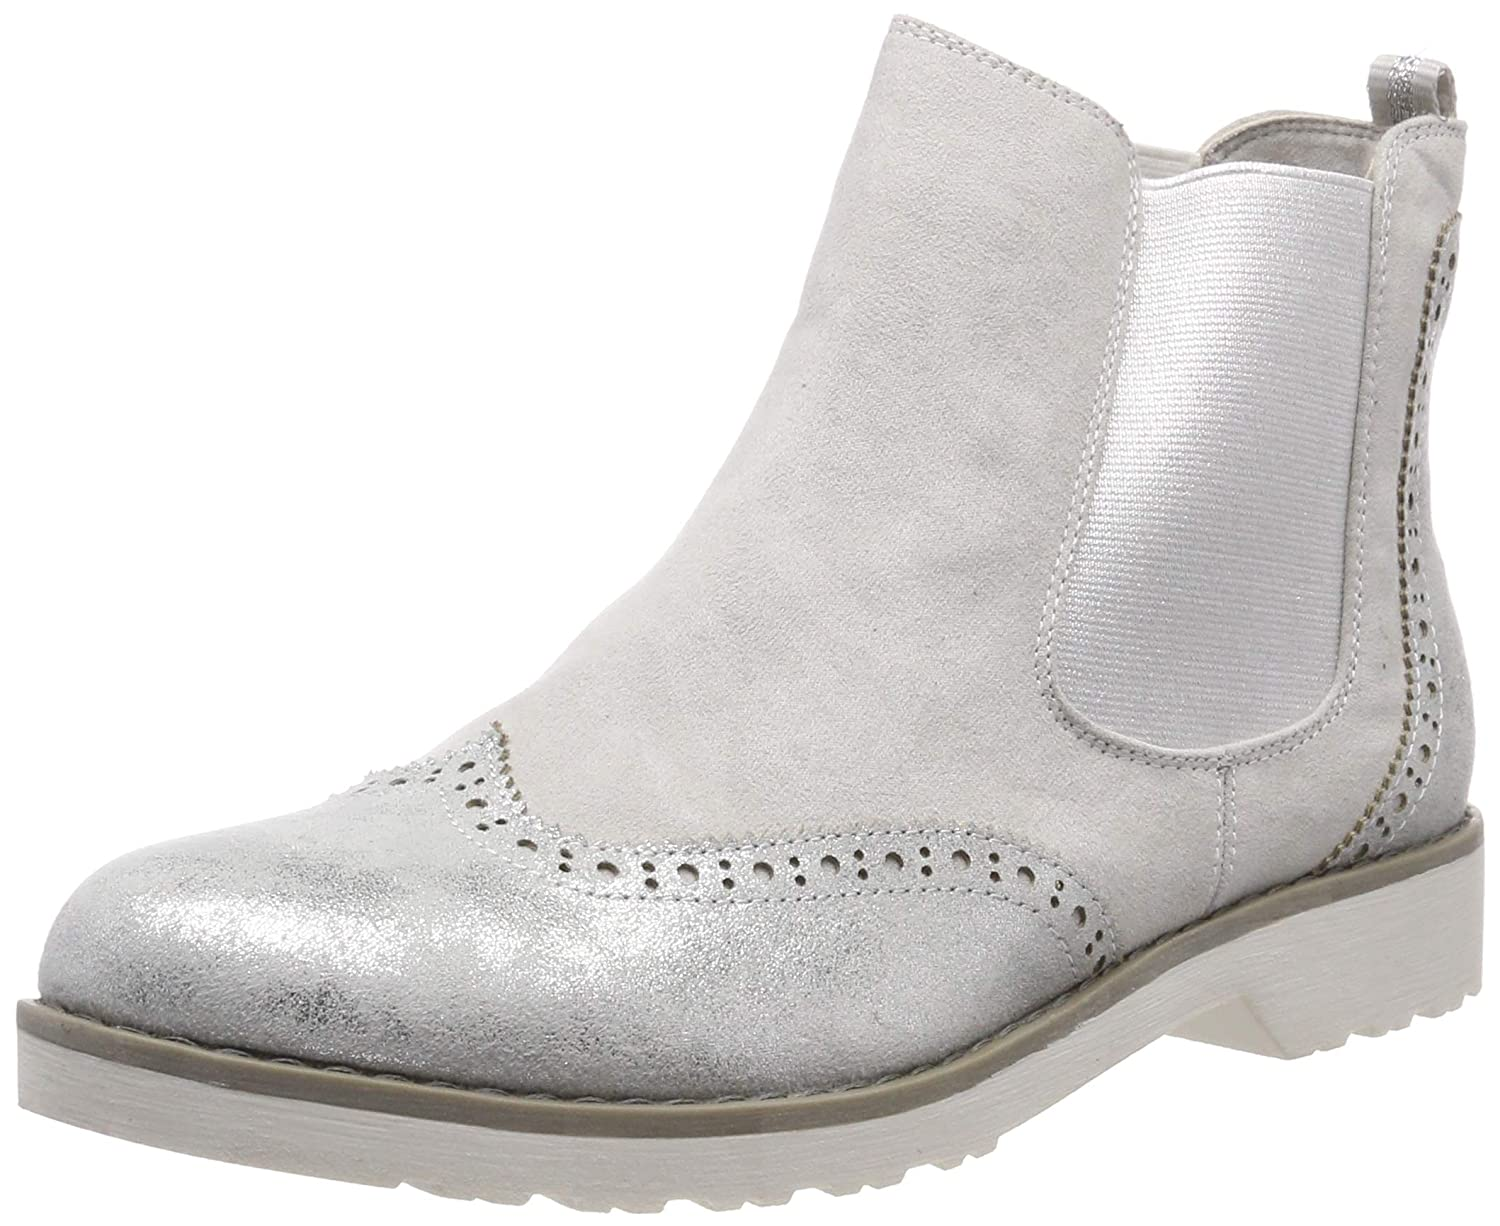 bester Service d84cd a4764 MARCO TOZZI Women's 2-2-25496-32 Ankle Boots